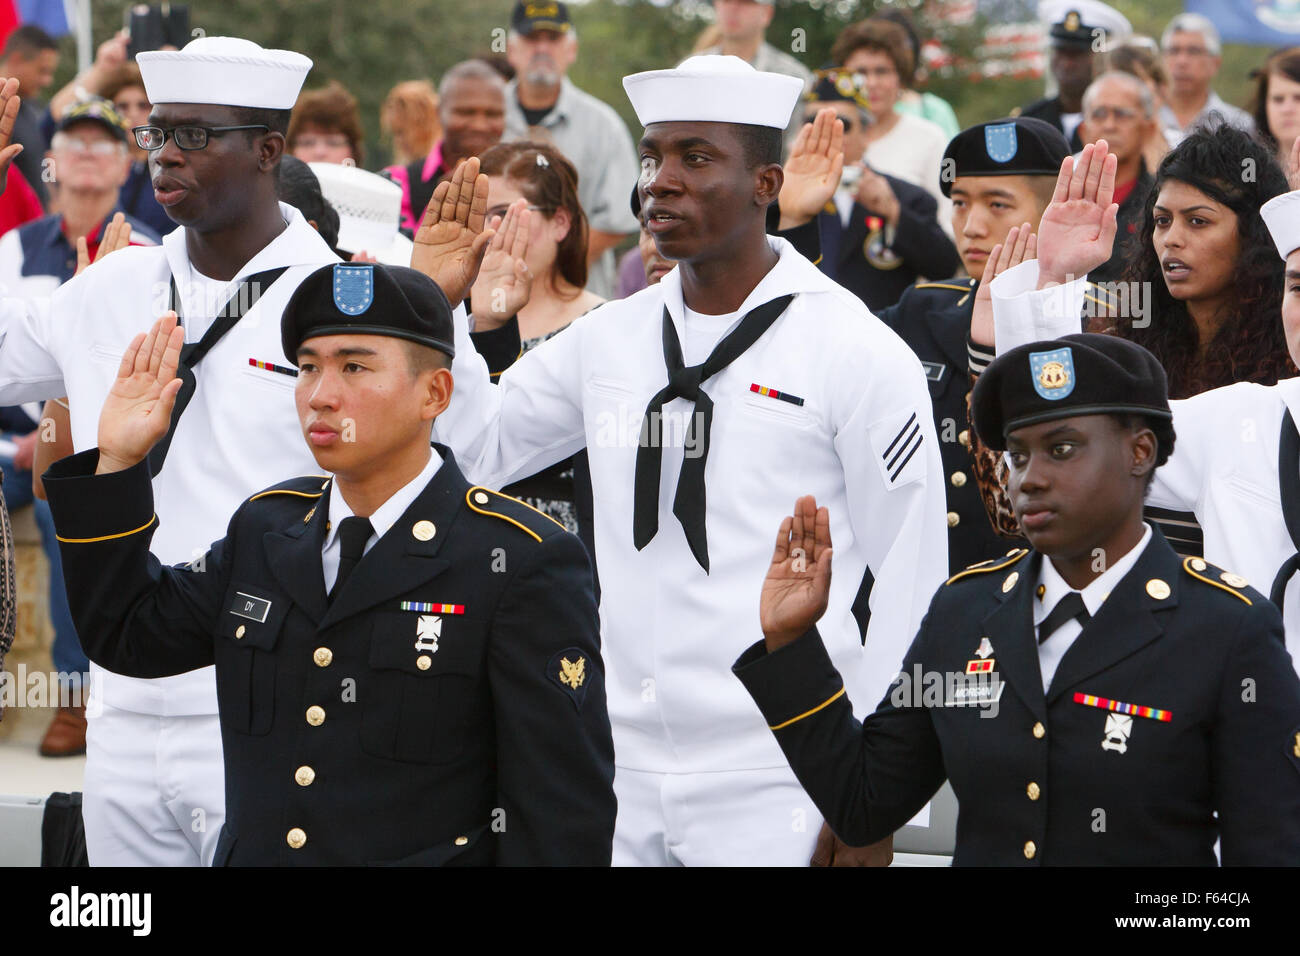 San Antonio, Texas, USA. November 11, 2015. Active duty servicemembers and veterans become new U.S. citizens as - Stock Image